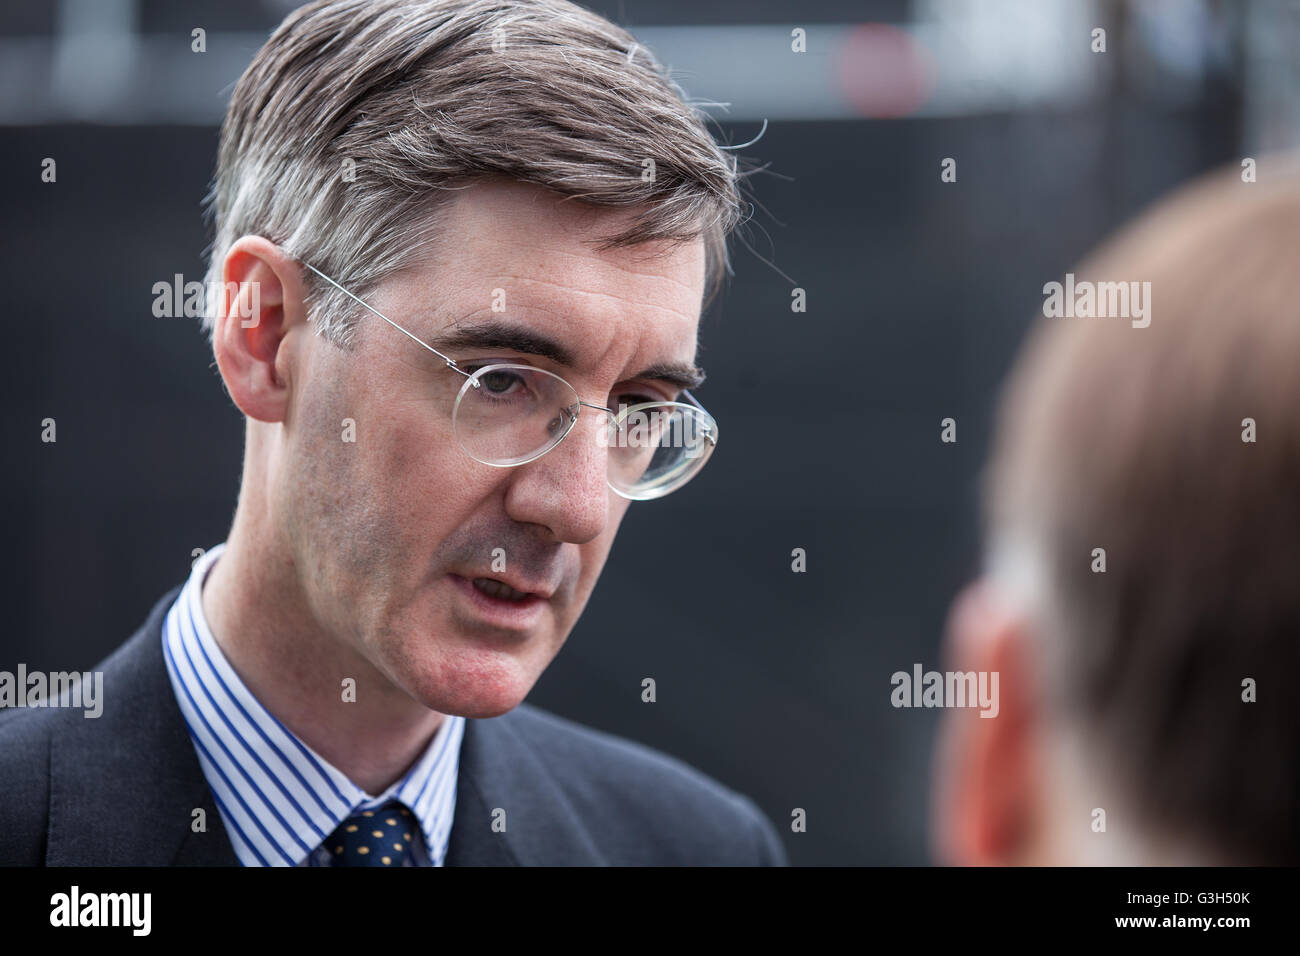 London, UK. 24th June, 2016. Jacob Rees-Mogg, Conservative MP for North East Somerset,  speaks to the media following - Stock Image